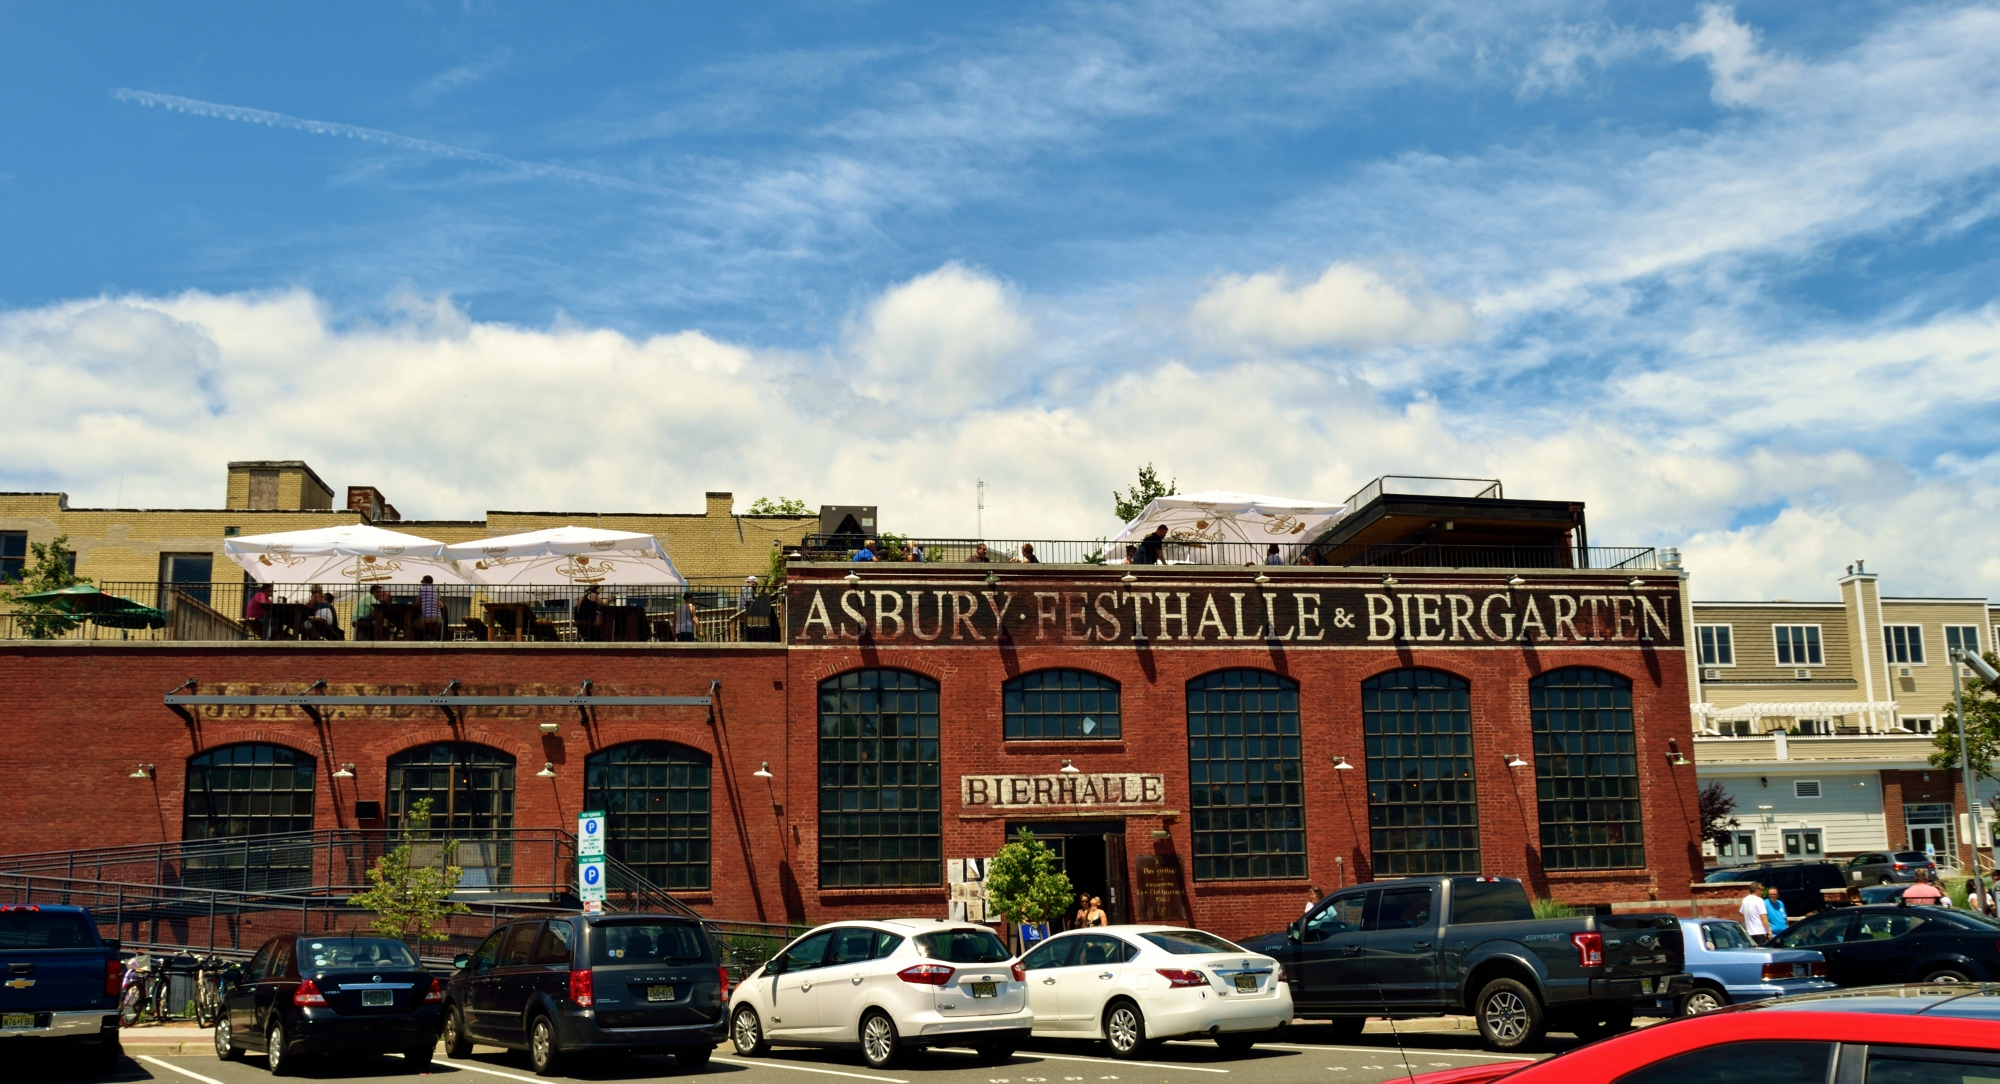 You've arrived at the Asbury Festhalle & Biergarten!